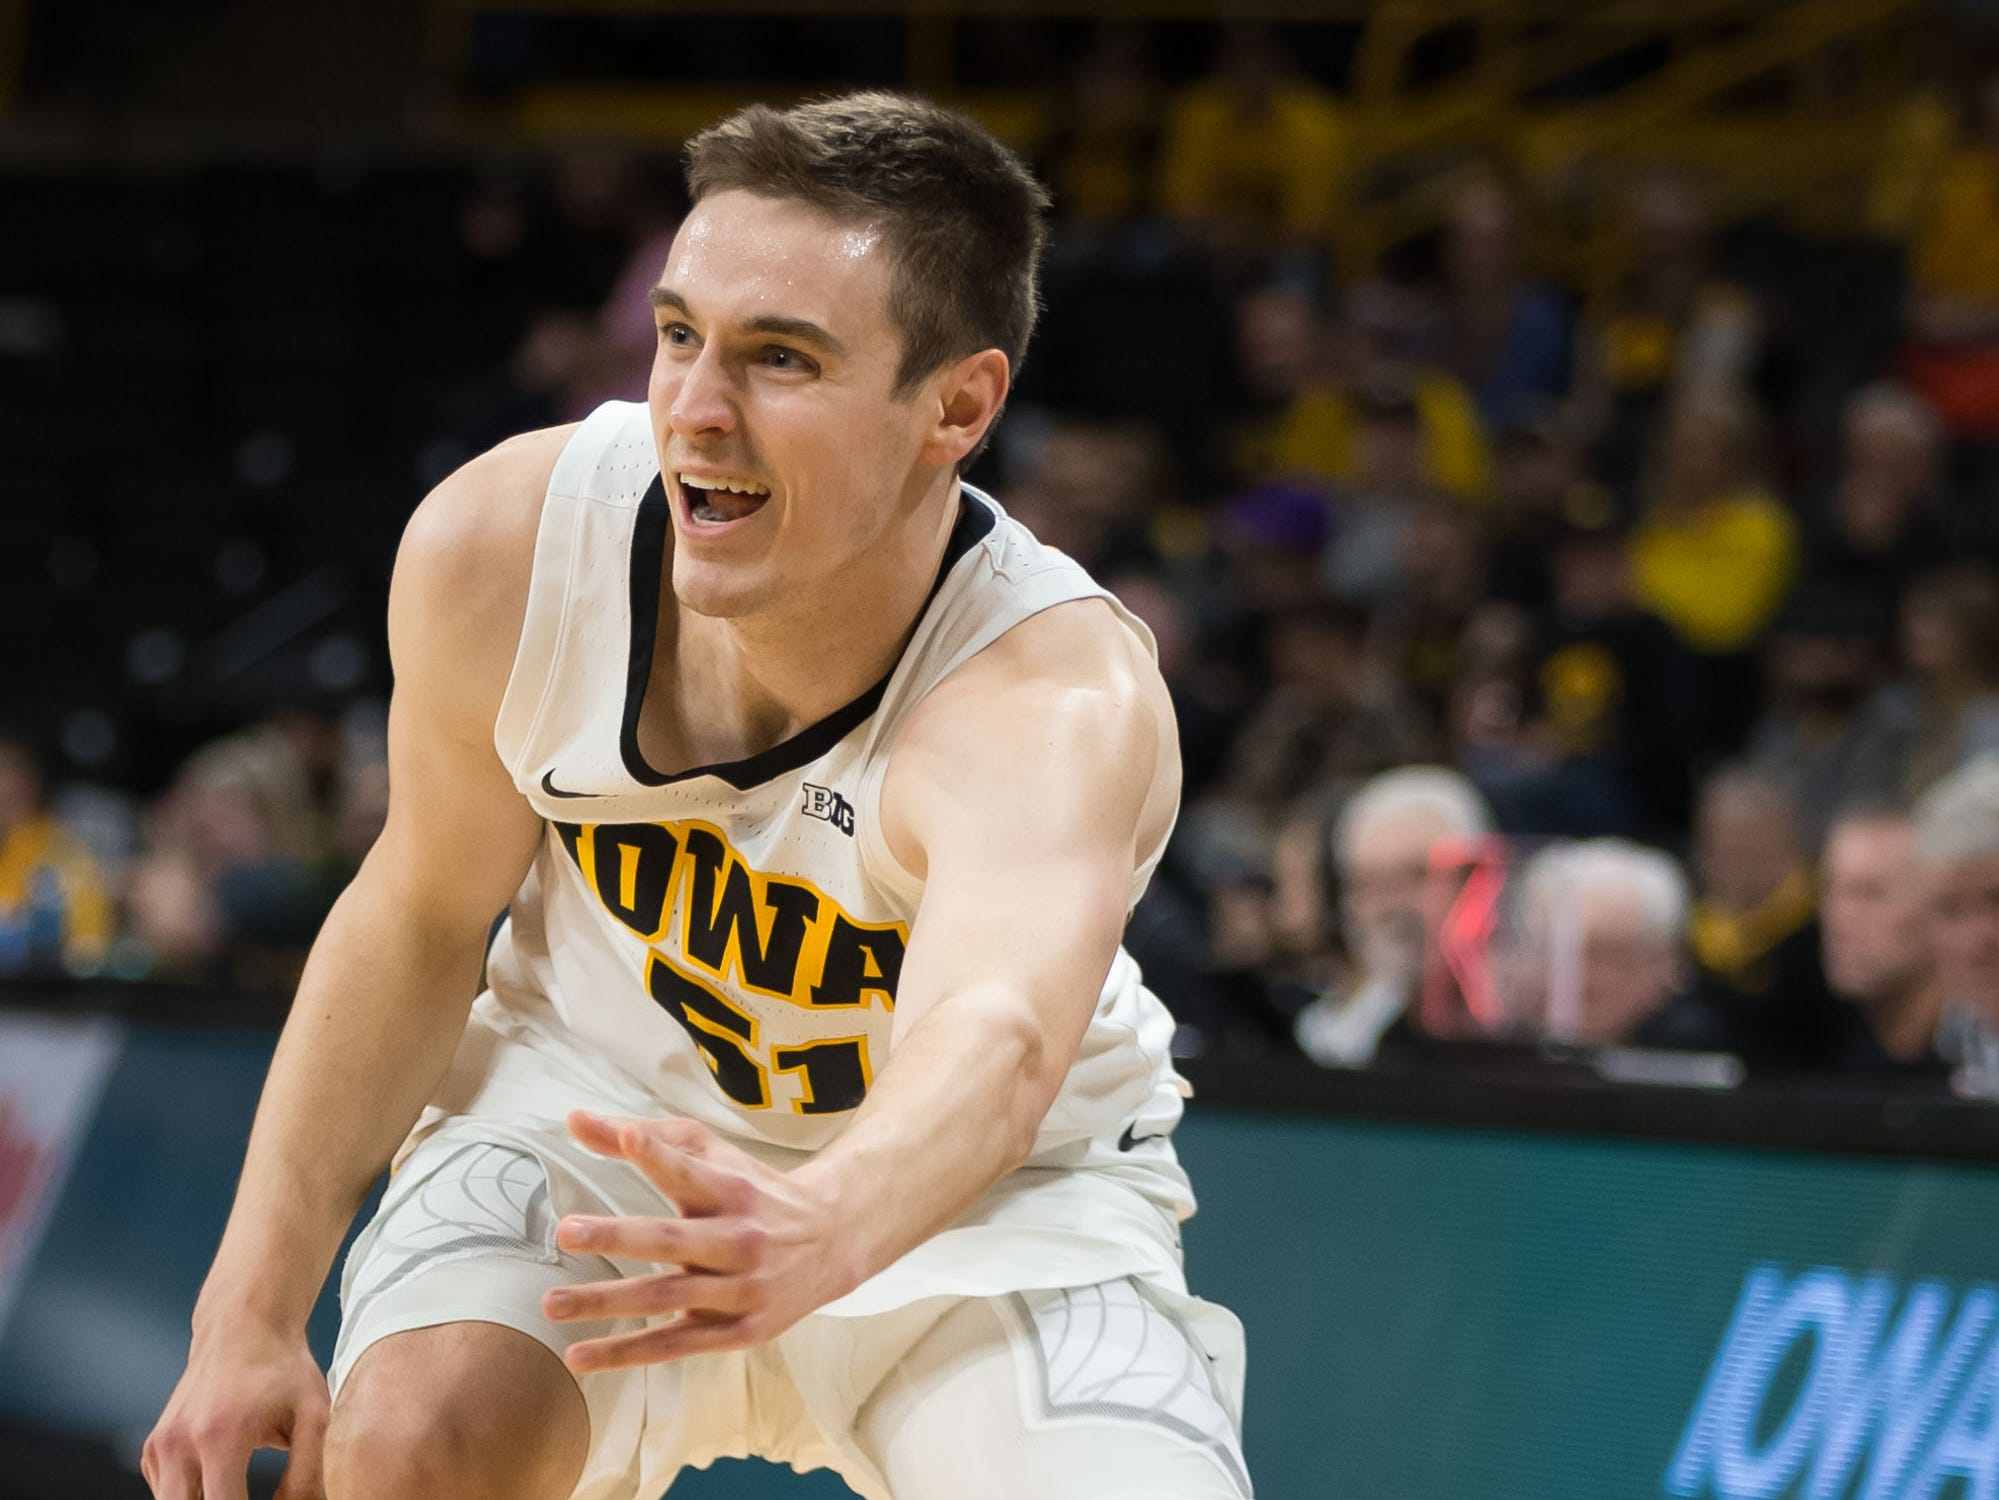 Iowa senior forward Nicholas Baer (51) pops a bounce pass in the second half at Carver Hawkeye Arena in Iowa City on Tuesday, Dec. 18, 2018.